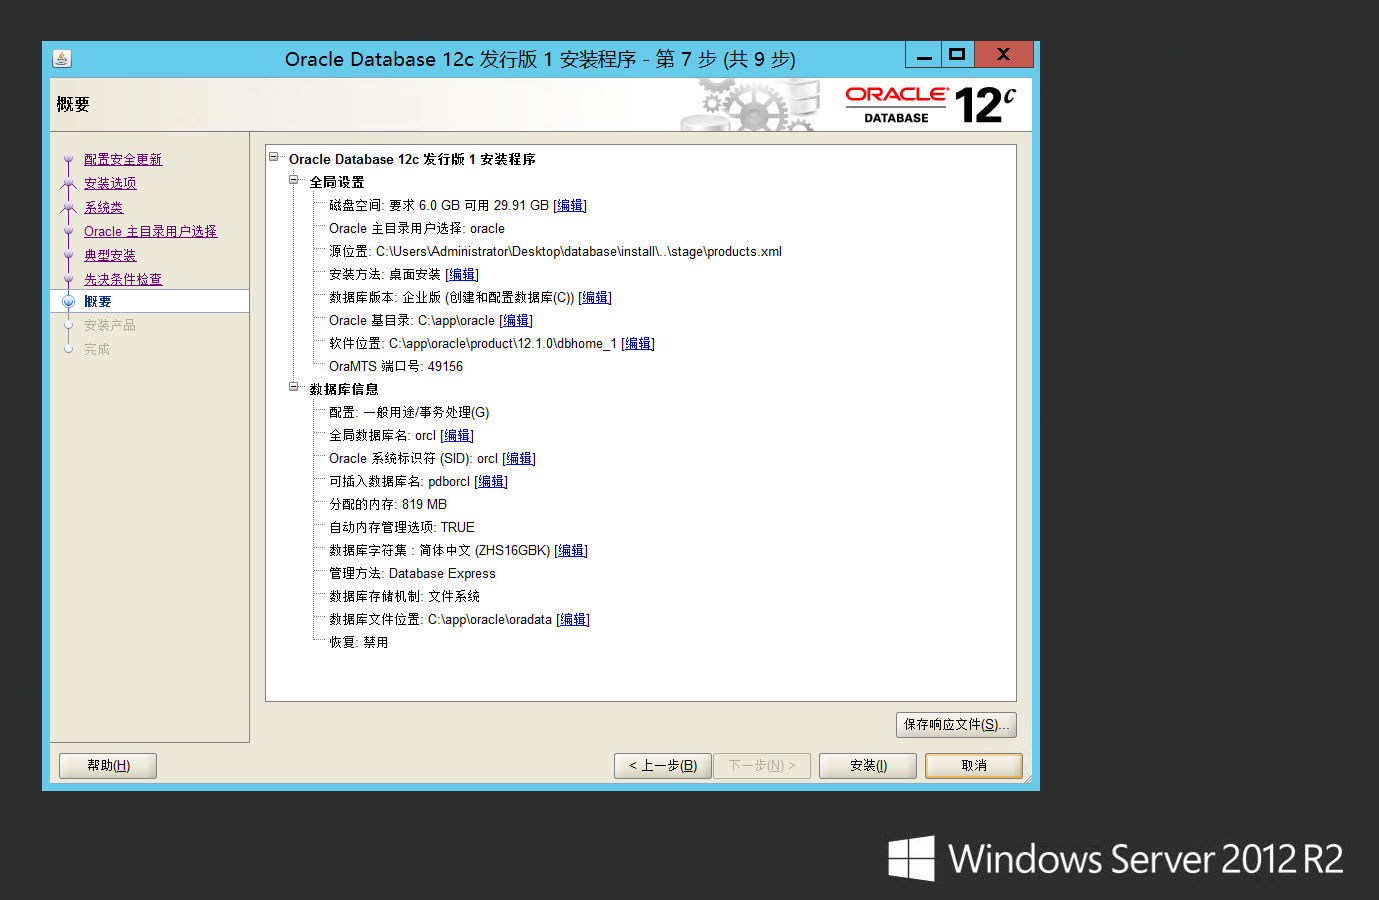 Windows Server 2012 配置指南 之 Oracle环境配置篇